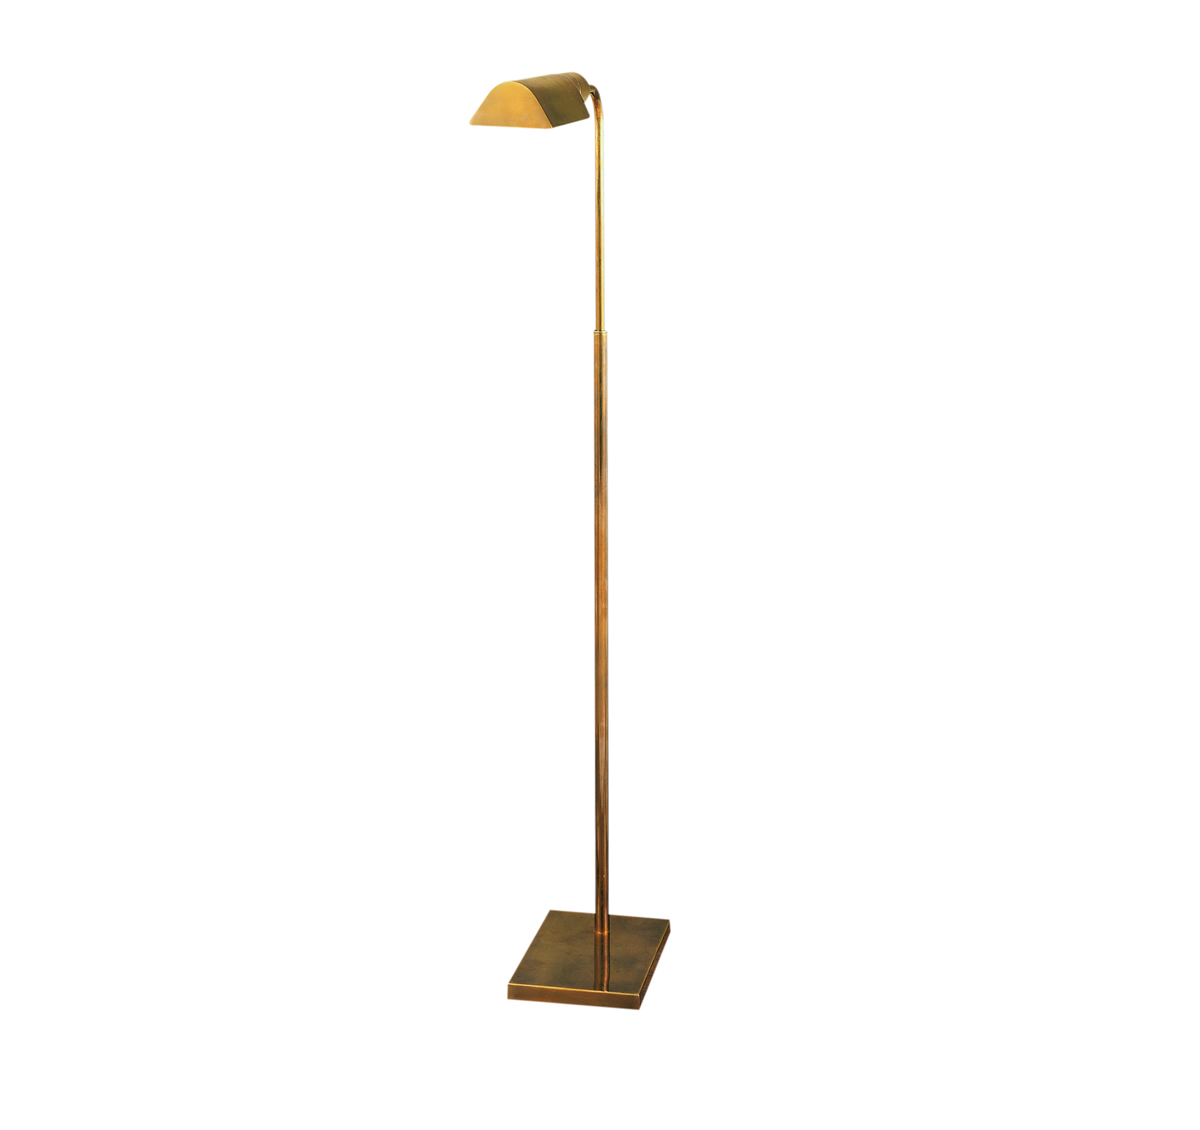 Adjustable pharmacy floor lamp from the Kellogg Collection | @kelloggfurn